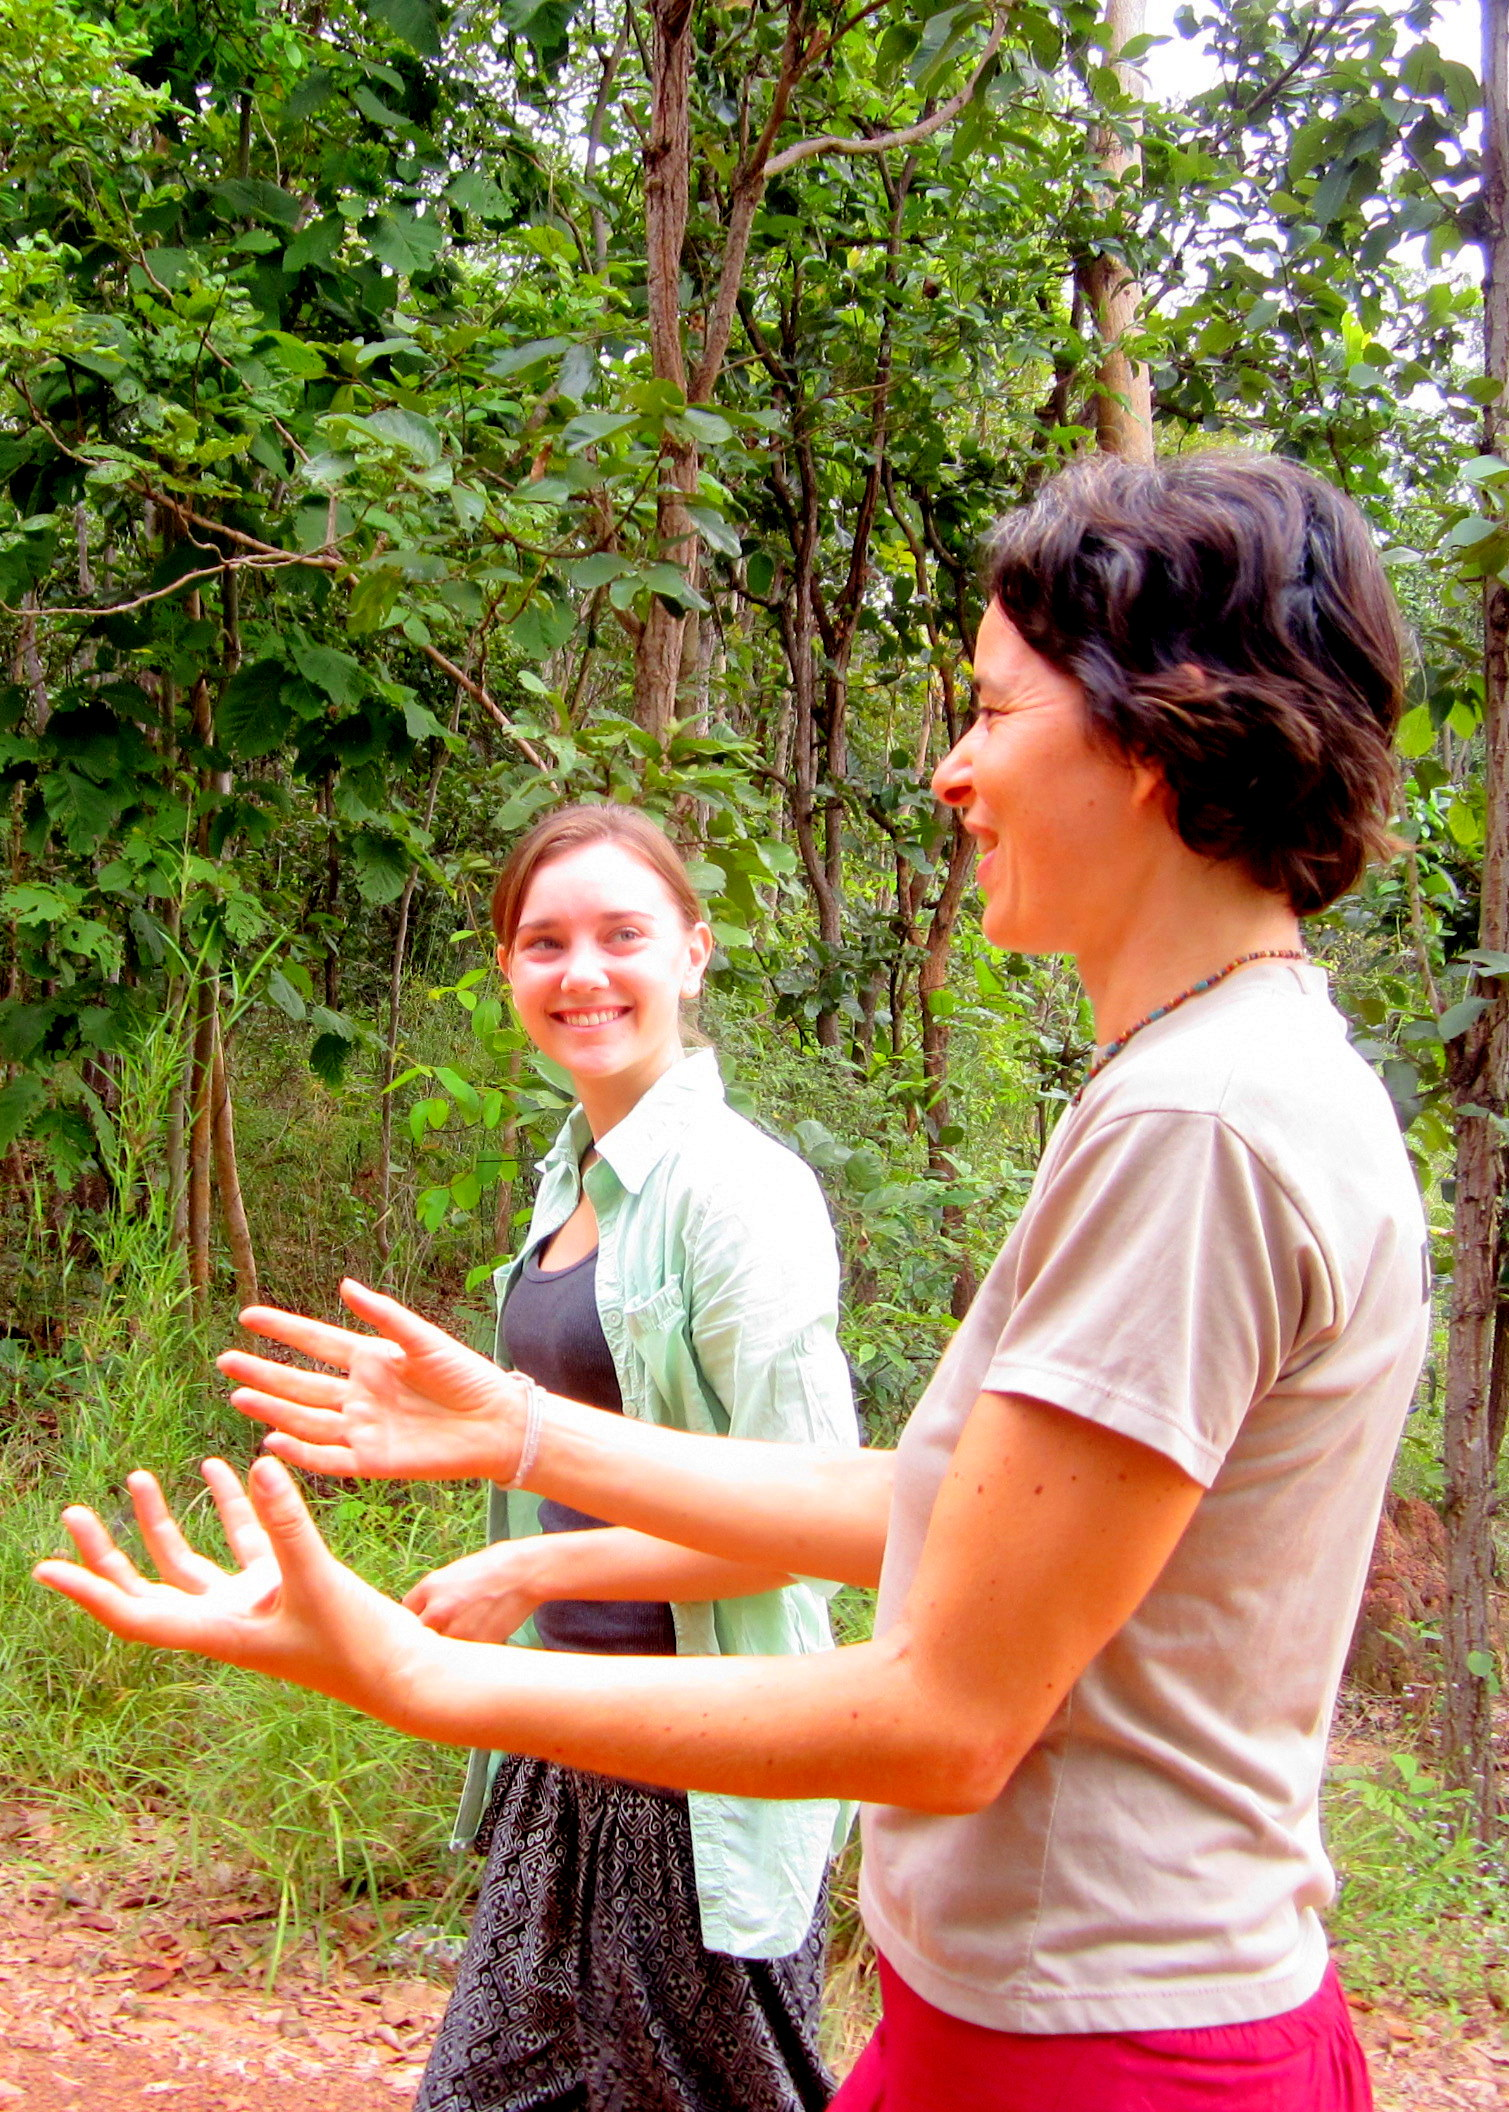 Anja, one of the leaders of the Mindfulness Project in Khon Kaen, Thailand